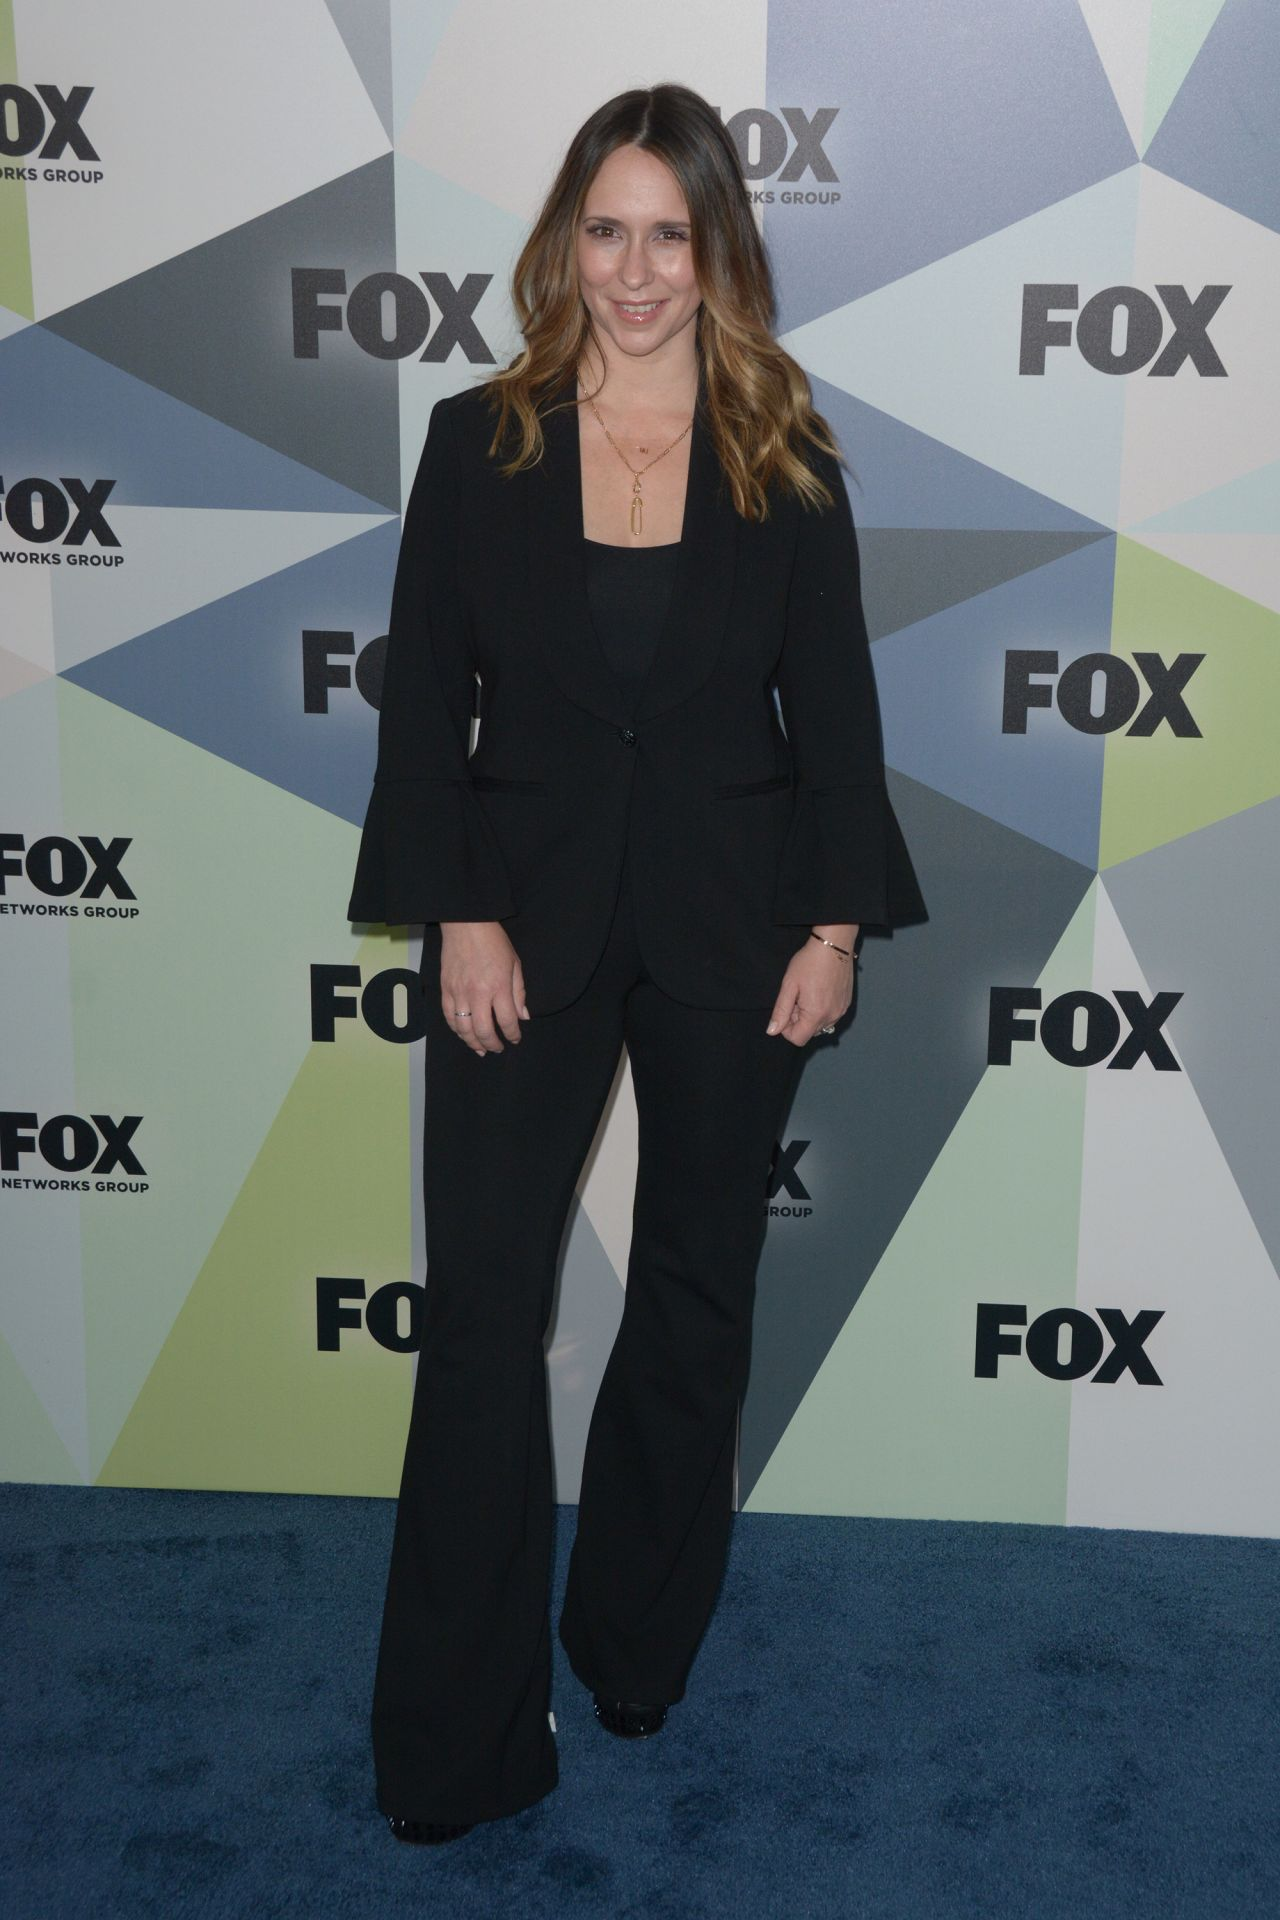 http://celebmafia.com/wp-content/uploads/2018/05/jennifer-love-hewitt-2018-fox-network-upfront-in-nyc-3.jpg